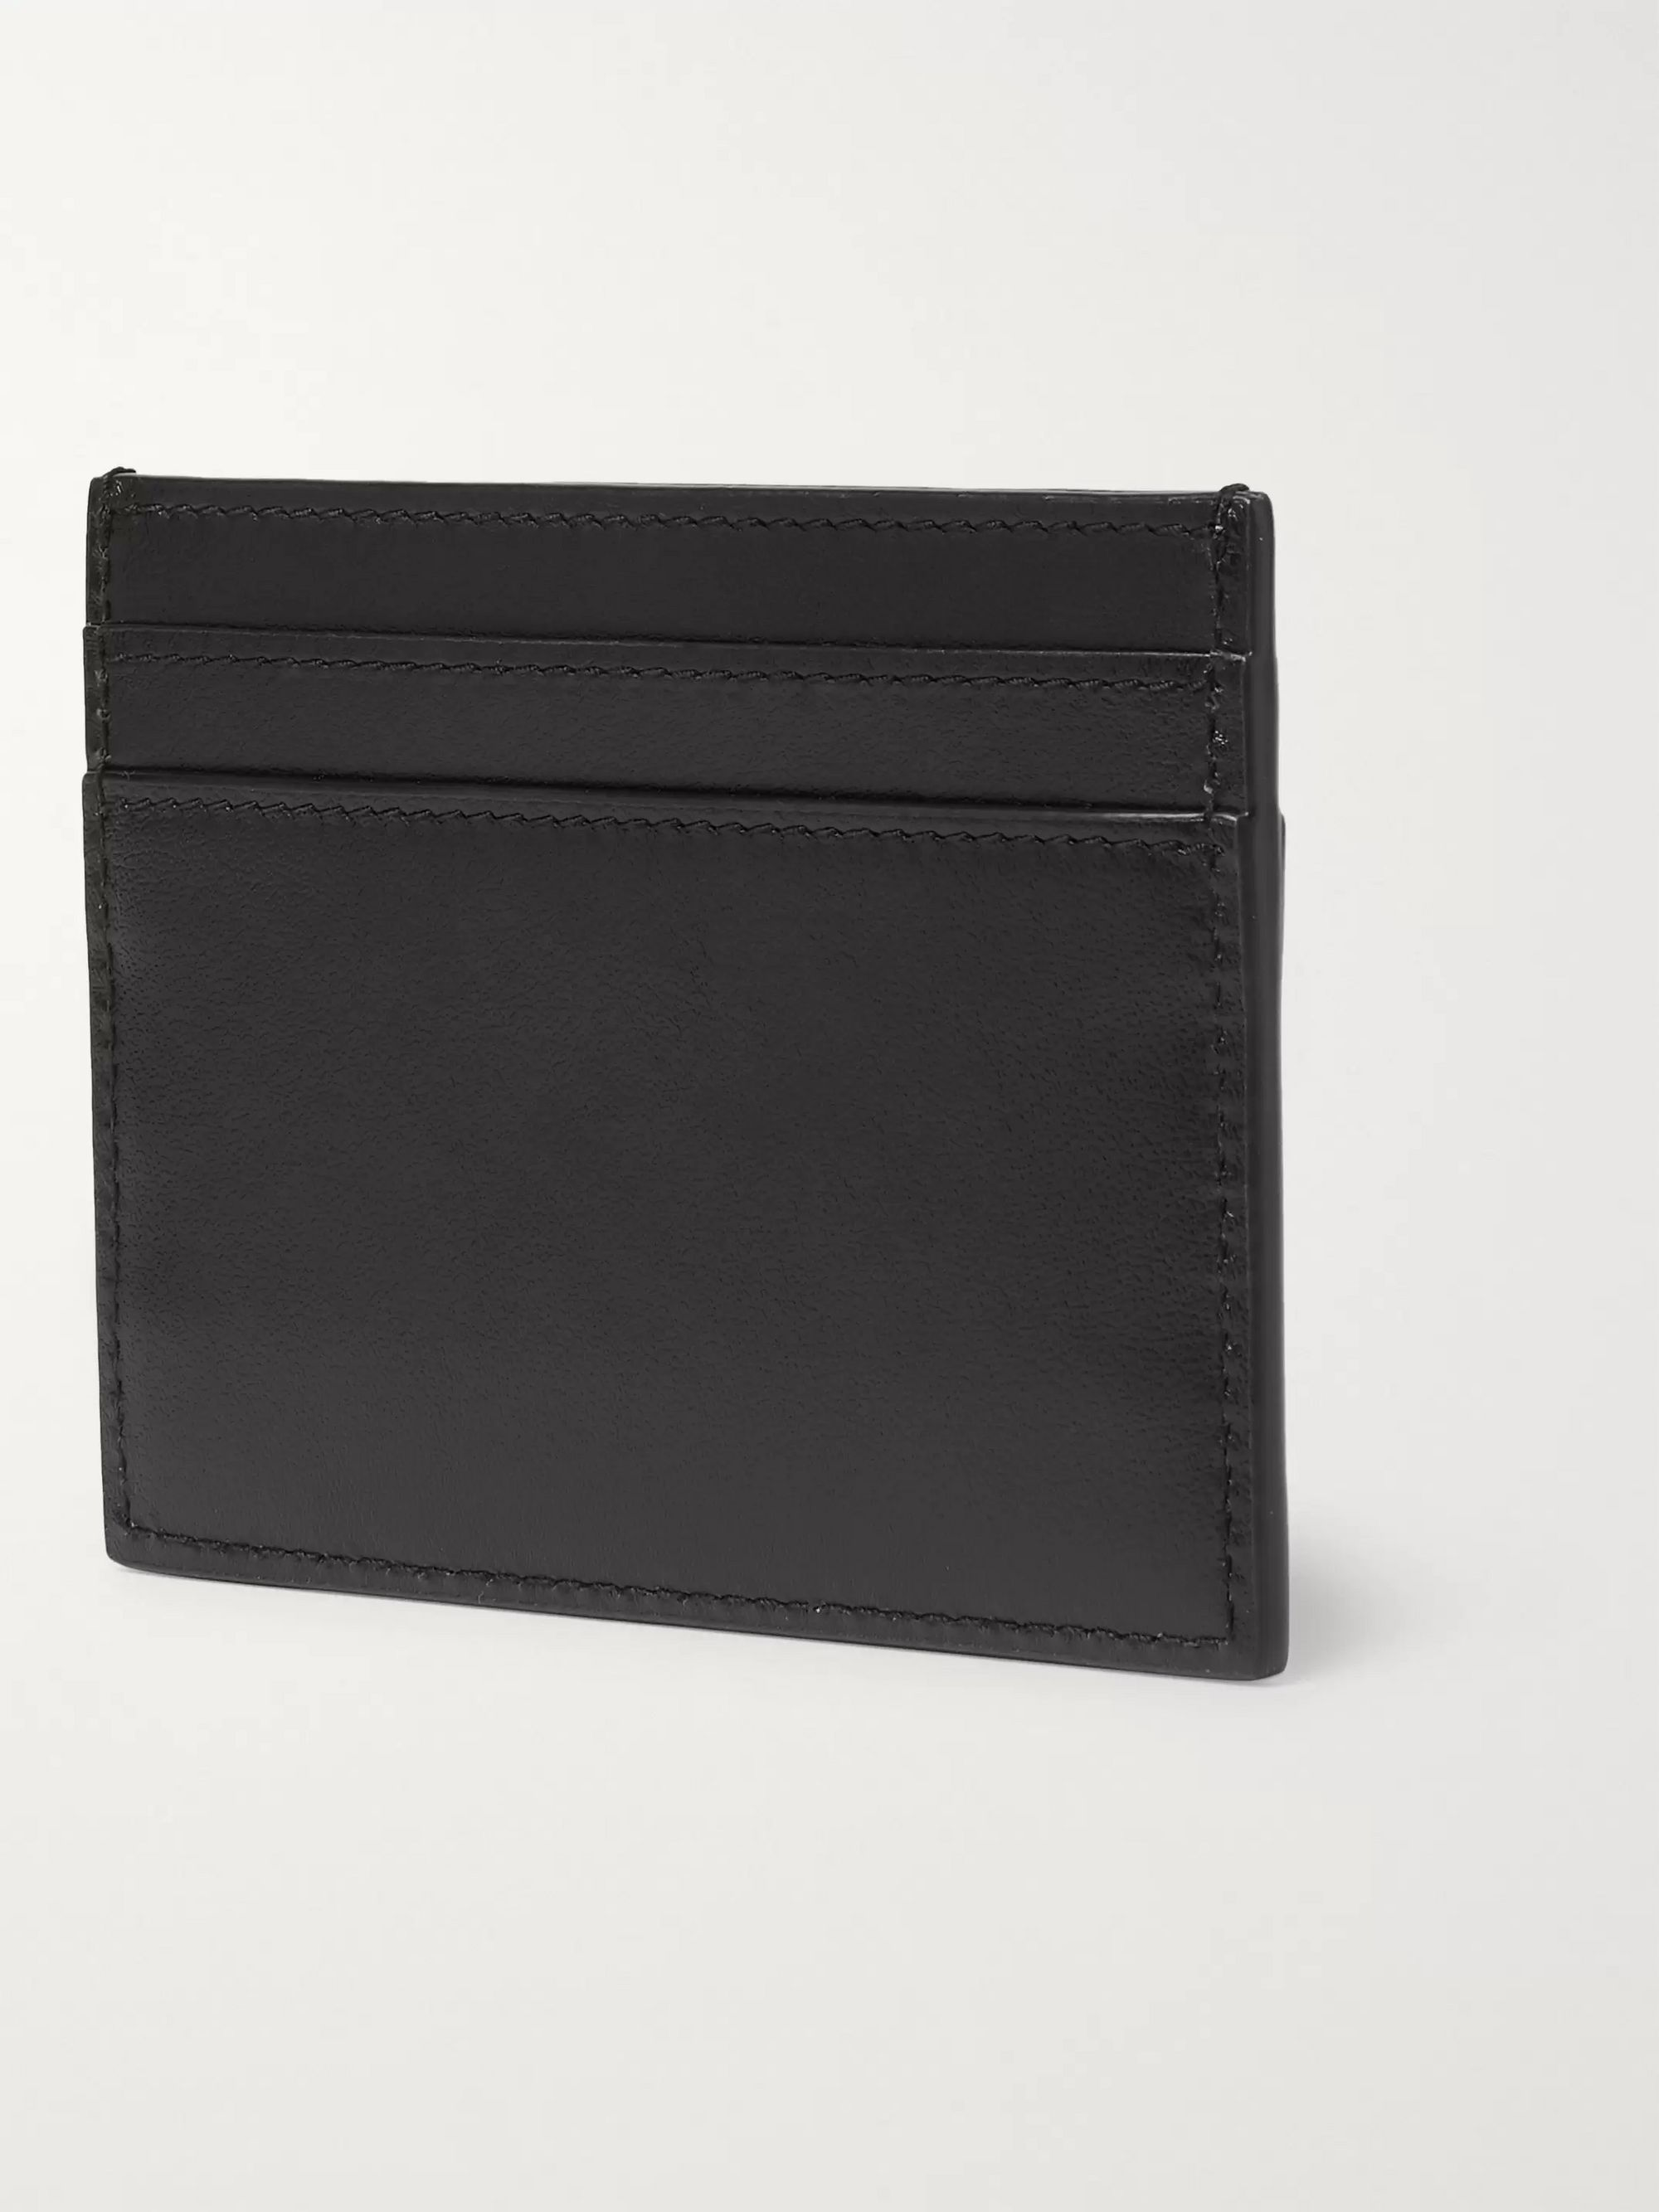 SAINT LAURENT Printed Textured-Leather Cardholder